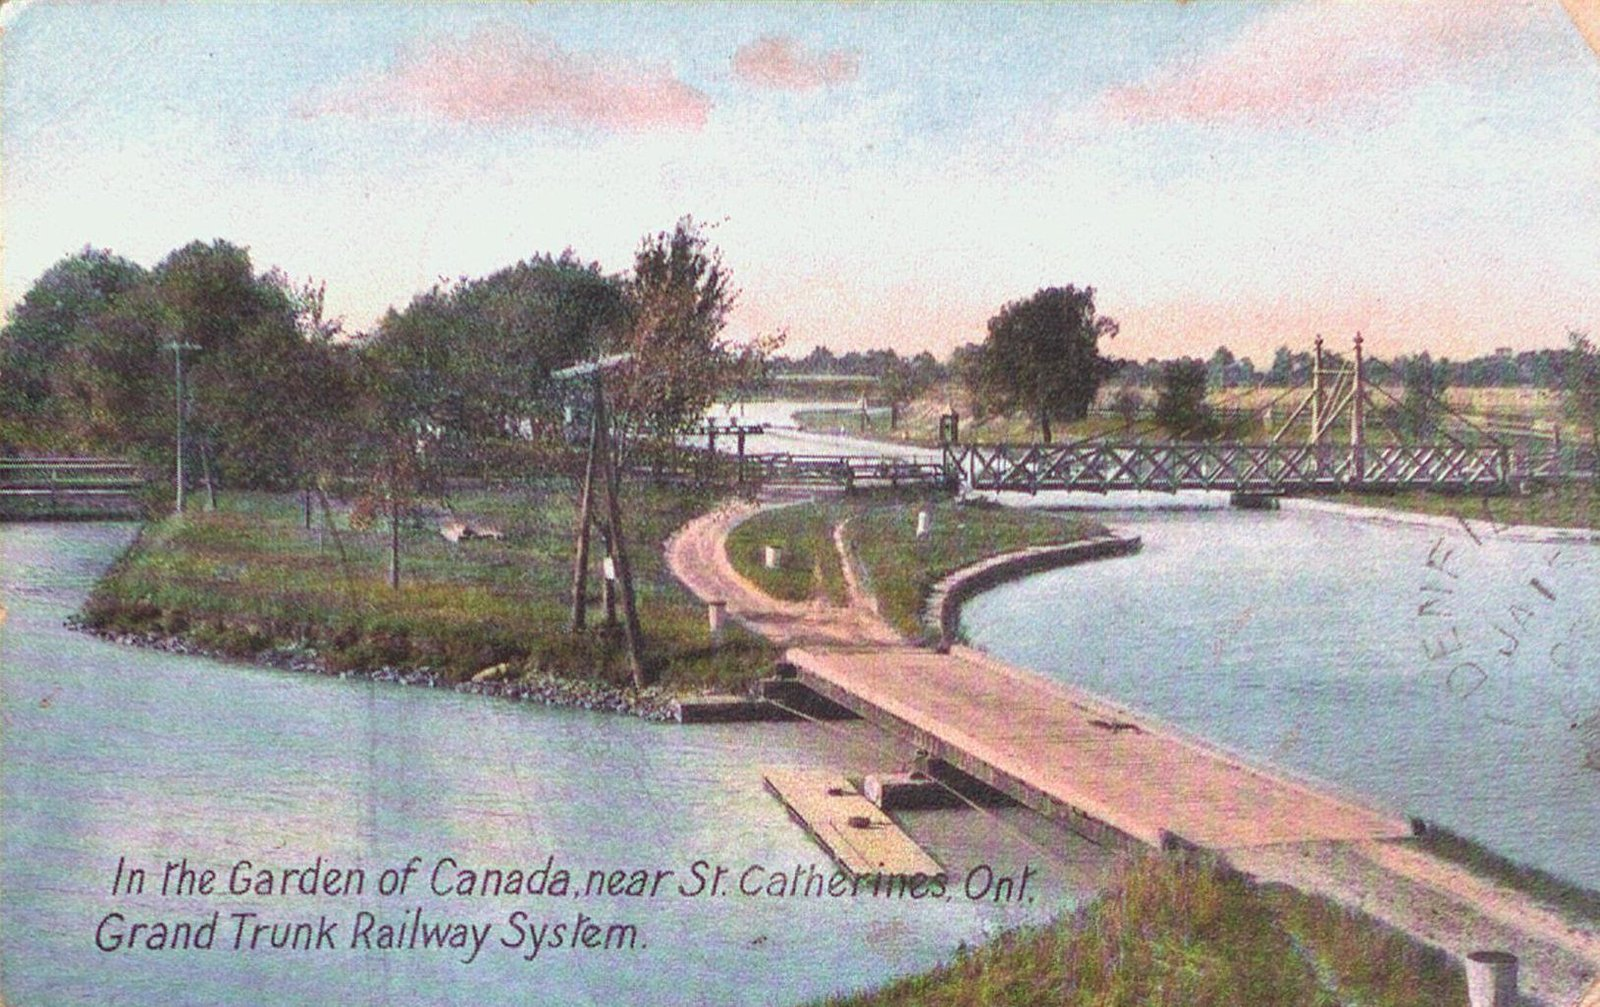 Grand Trunk Railway System near St. Catharines